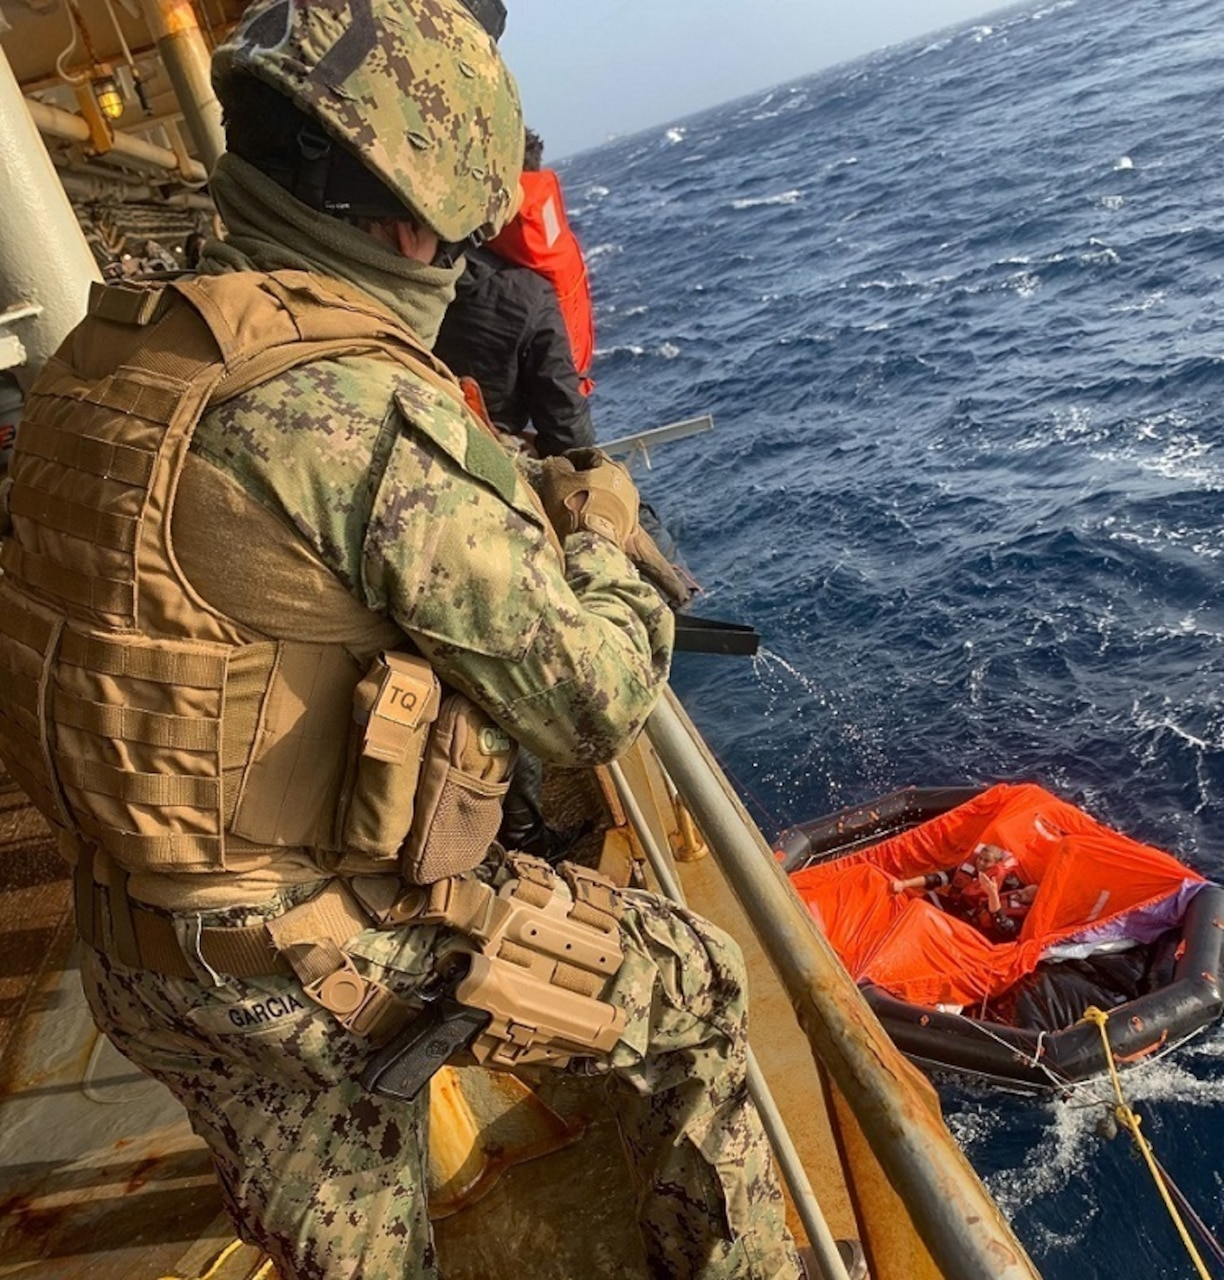 Master-at-Arms 2nd Class Michael Garcia, assigned to Embarked Security Intelligence Team 11, deployed with Commander, Task Force (CTF) 56, aboard the Military Sealift Command fleet replenishment oiler USNS Patuxent (T-AO 201), relays information on a radio during rescue operations for the crew members of a motor vessel Falcon Line, which sank in the Gulf of Aden, June 8.